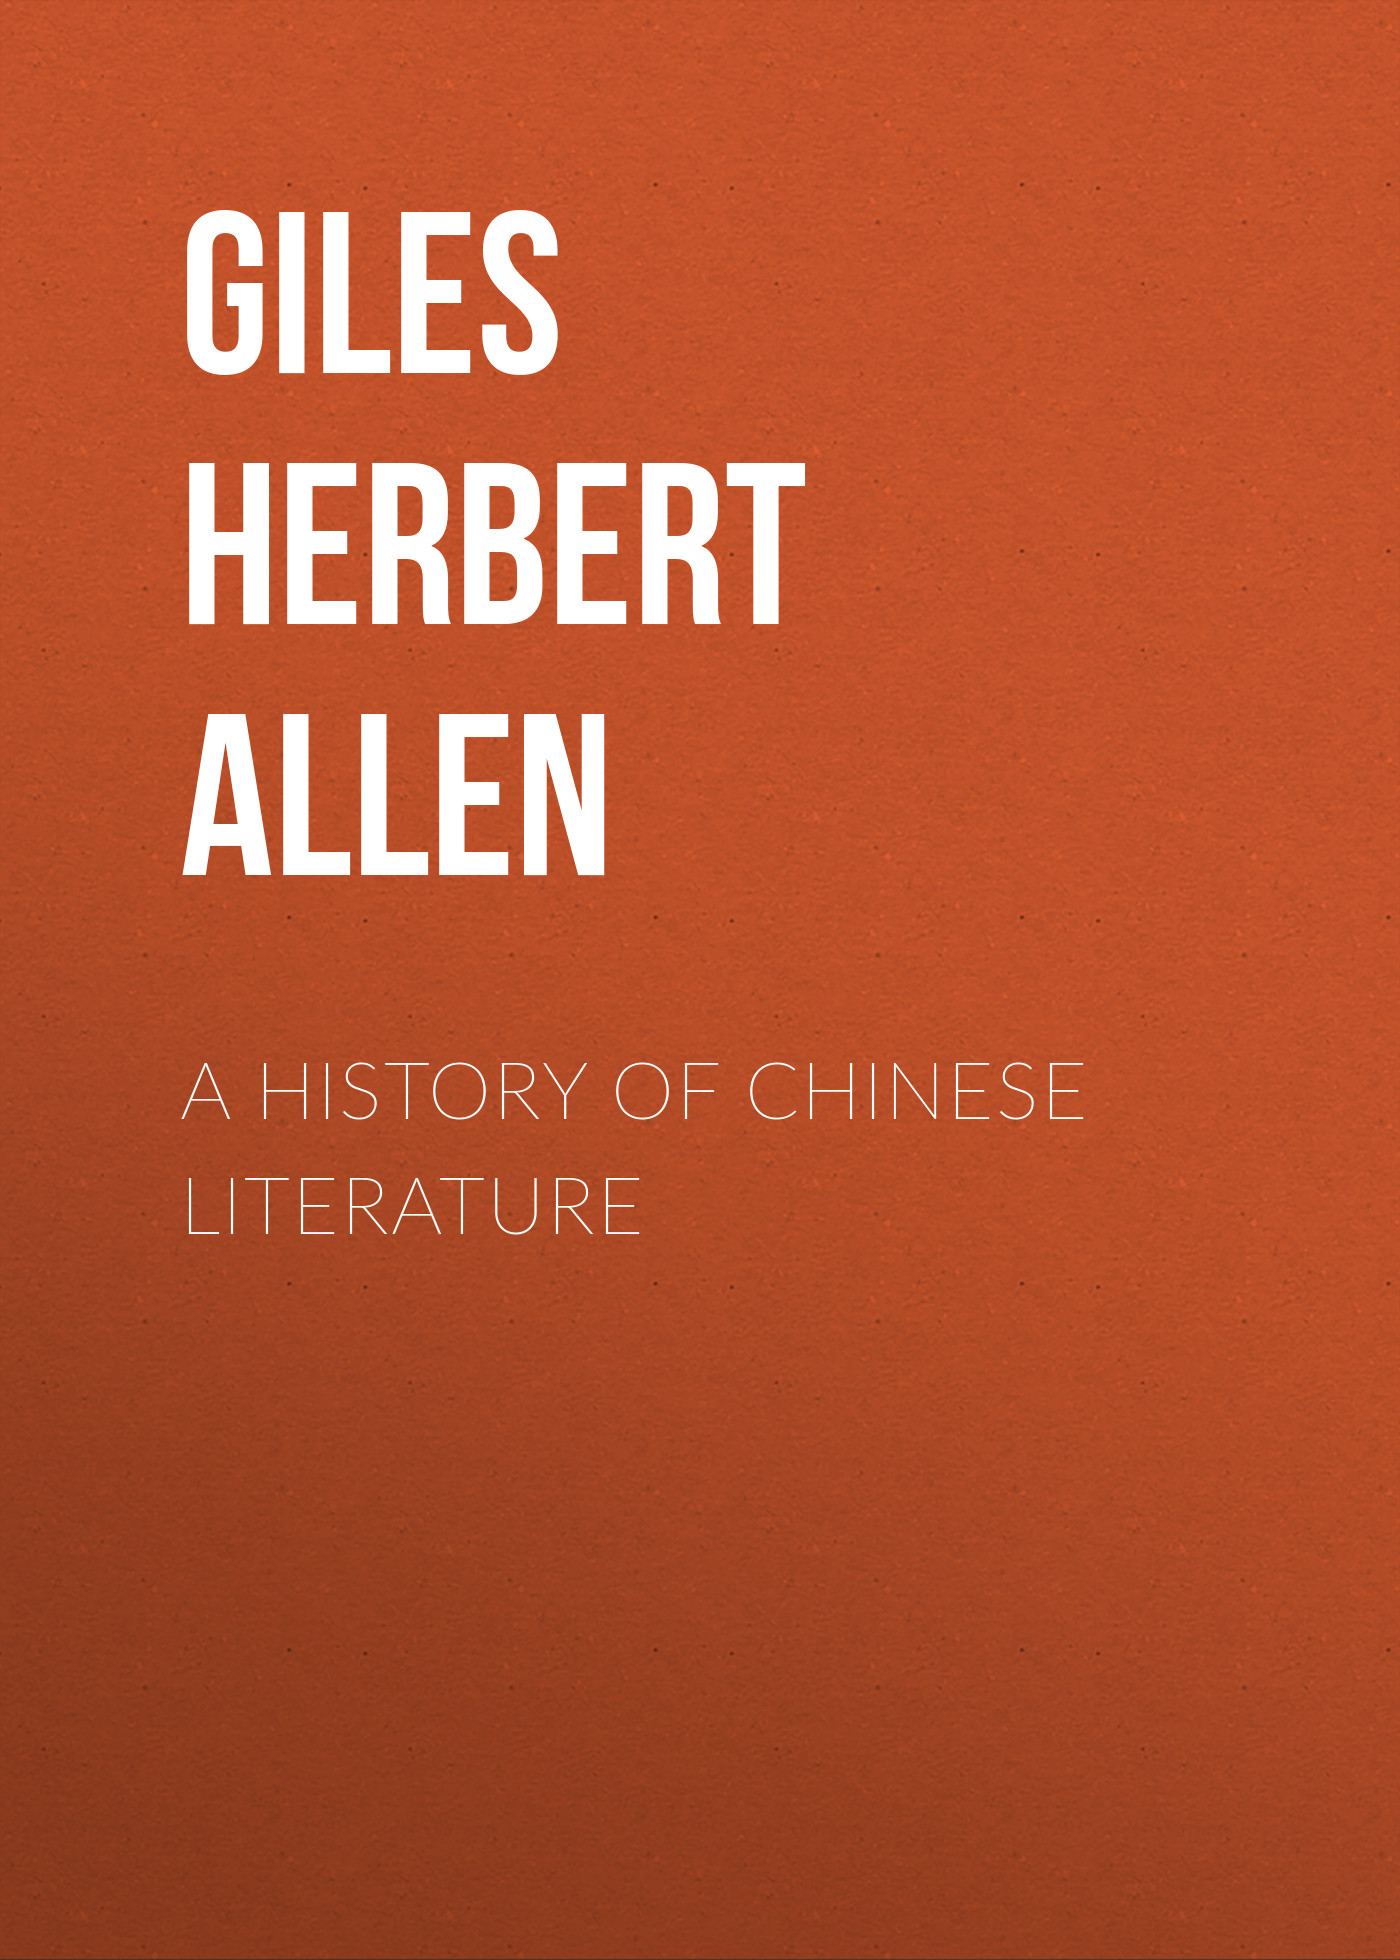 Giles Herbert Allen A History of Chinese Literature chinese pottery history of pottery chinese civilization history chinese english